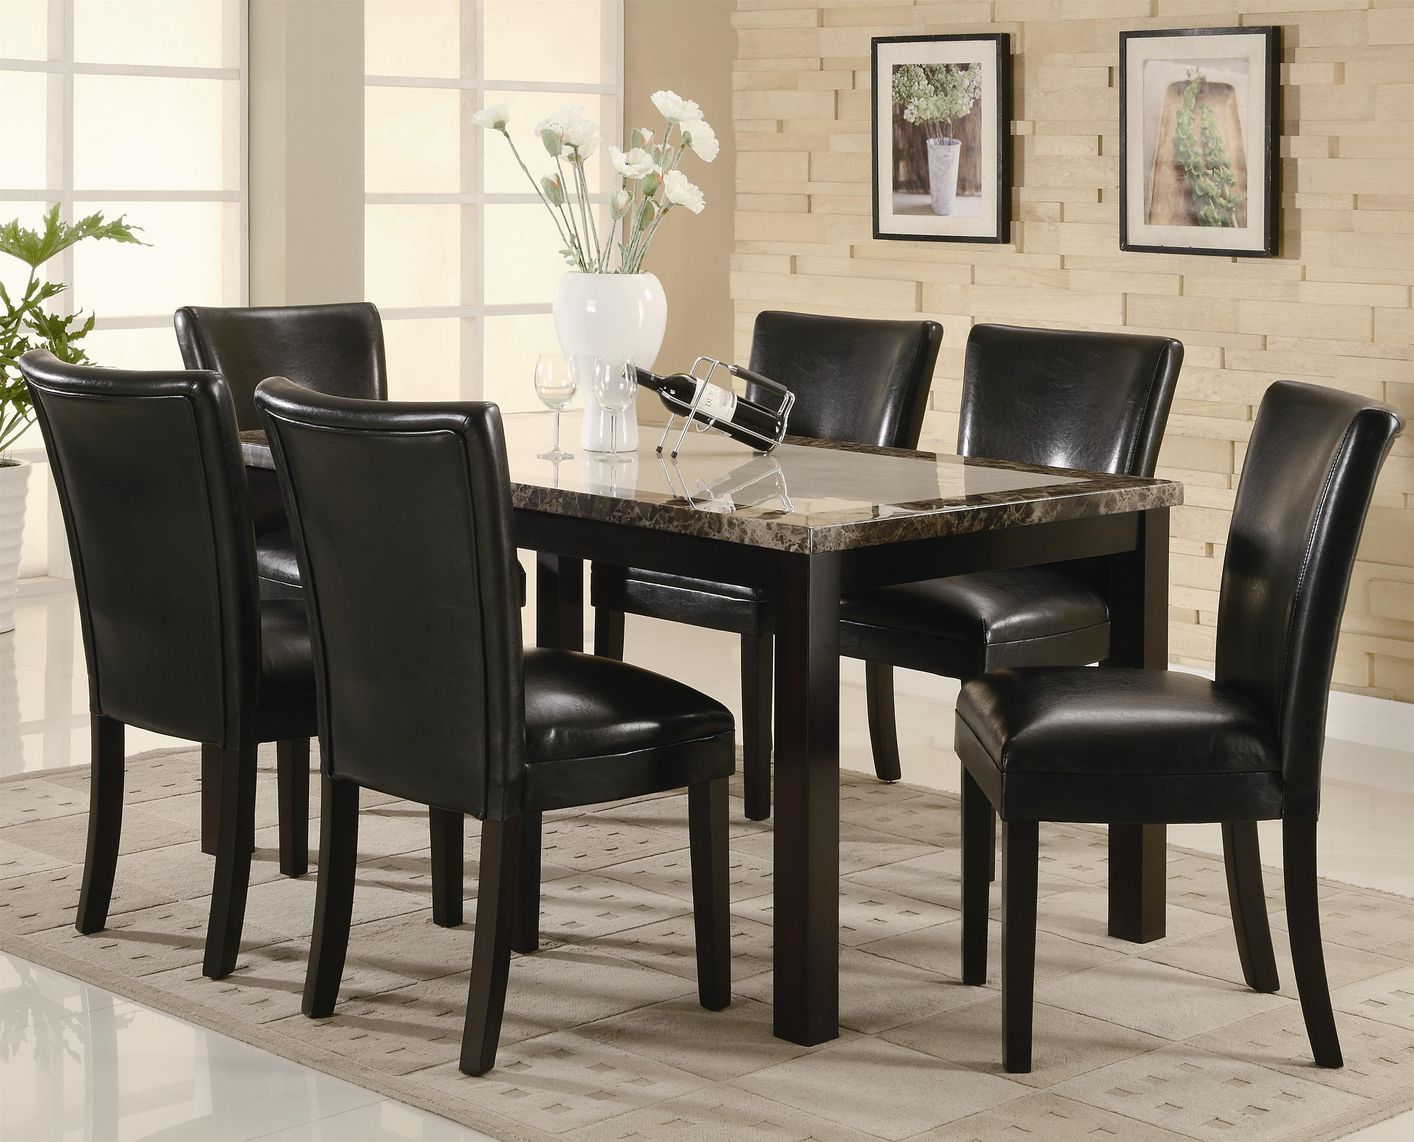 Coaster carter 102260 102262 brown wood and marble dining for Dining table chairs